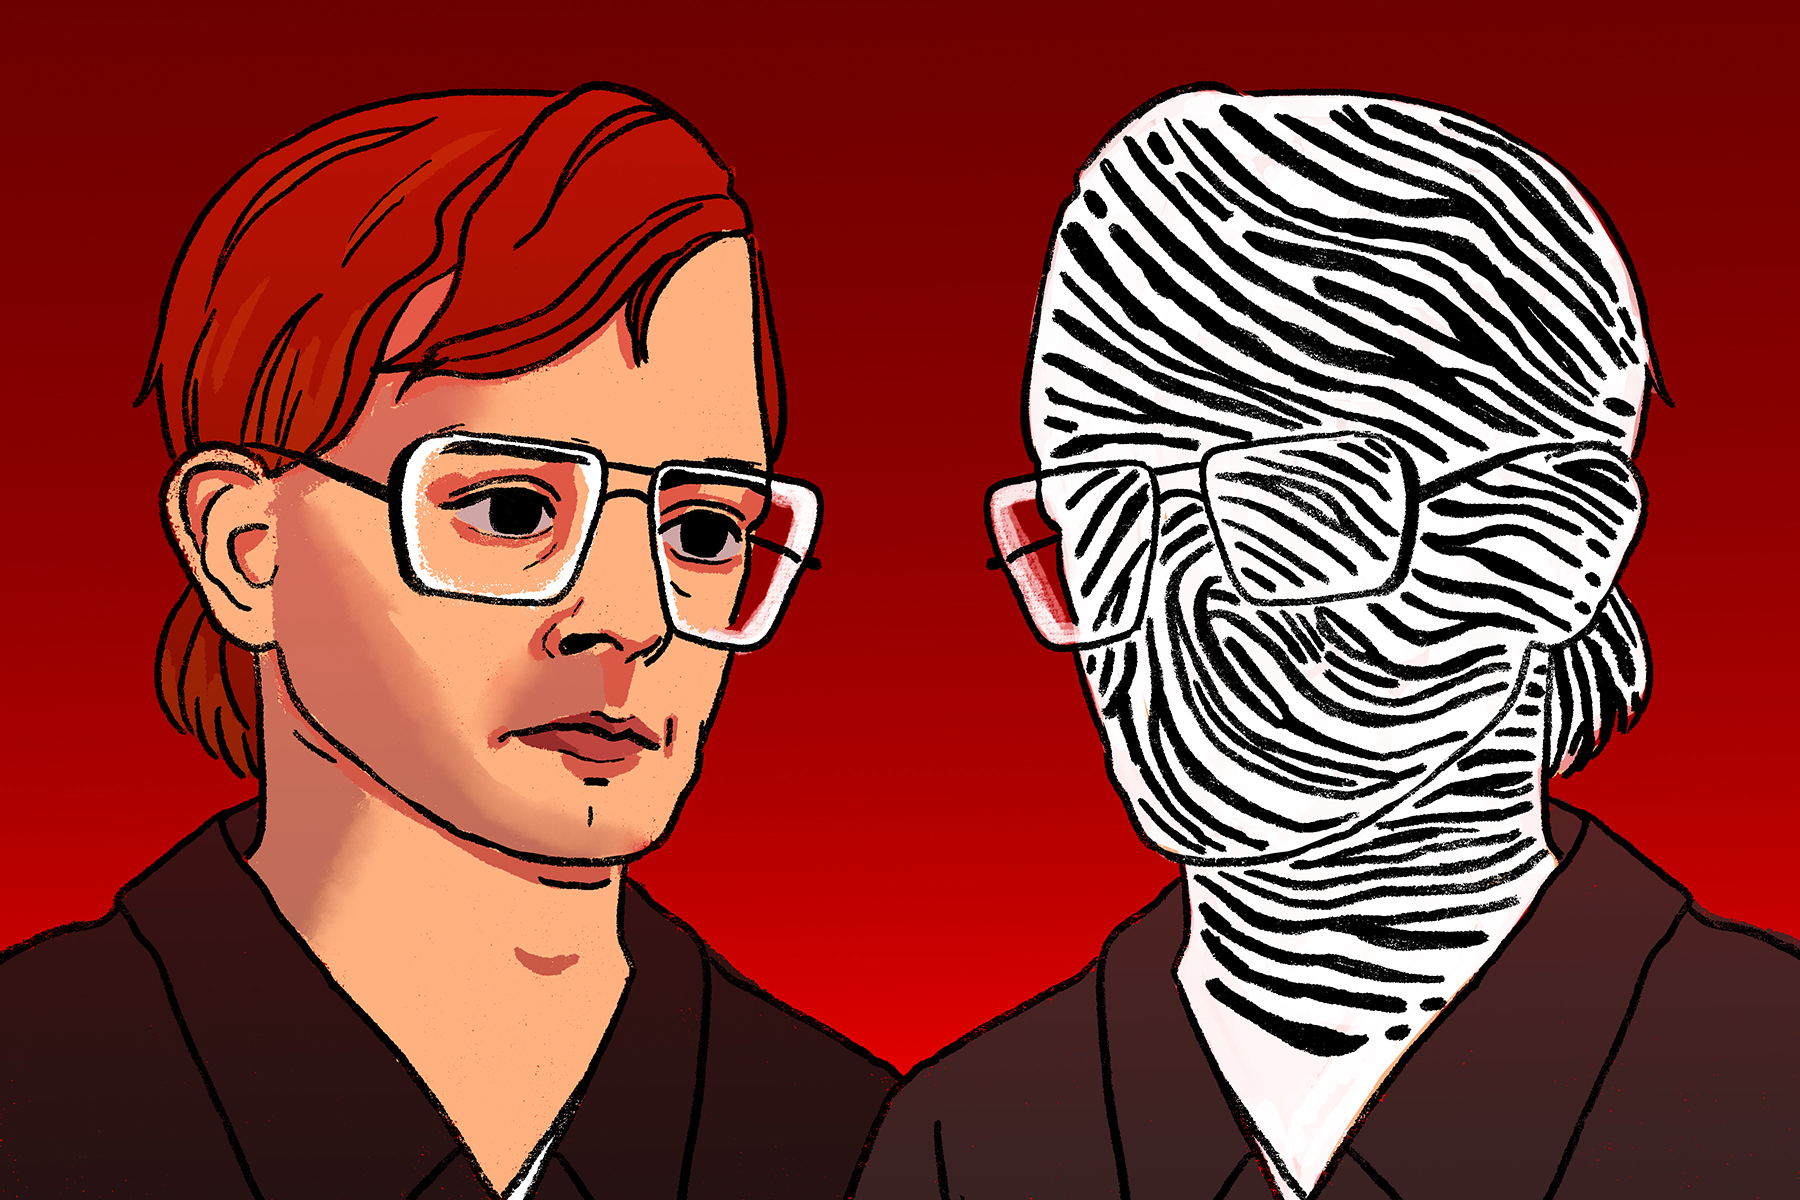 Illustration by Marlowe Pody for an article on Jeffrey Dahmer